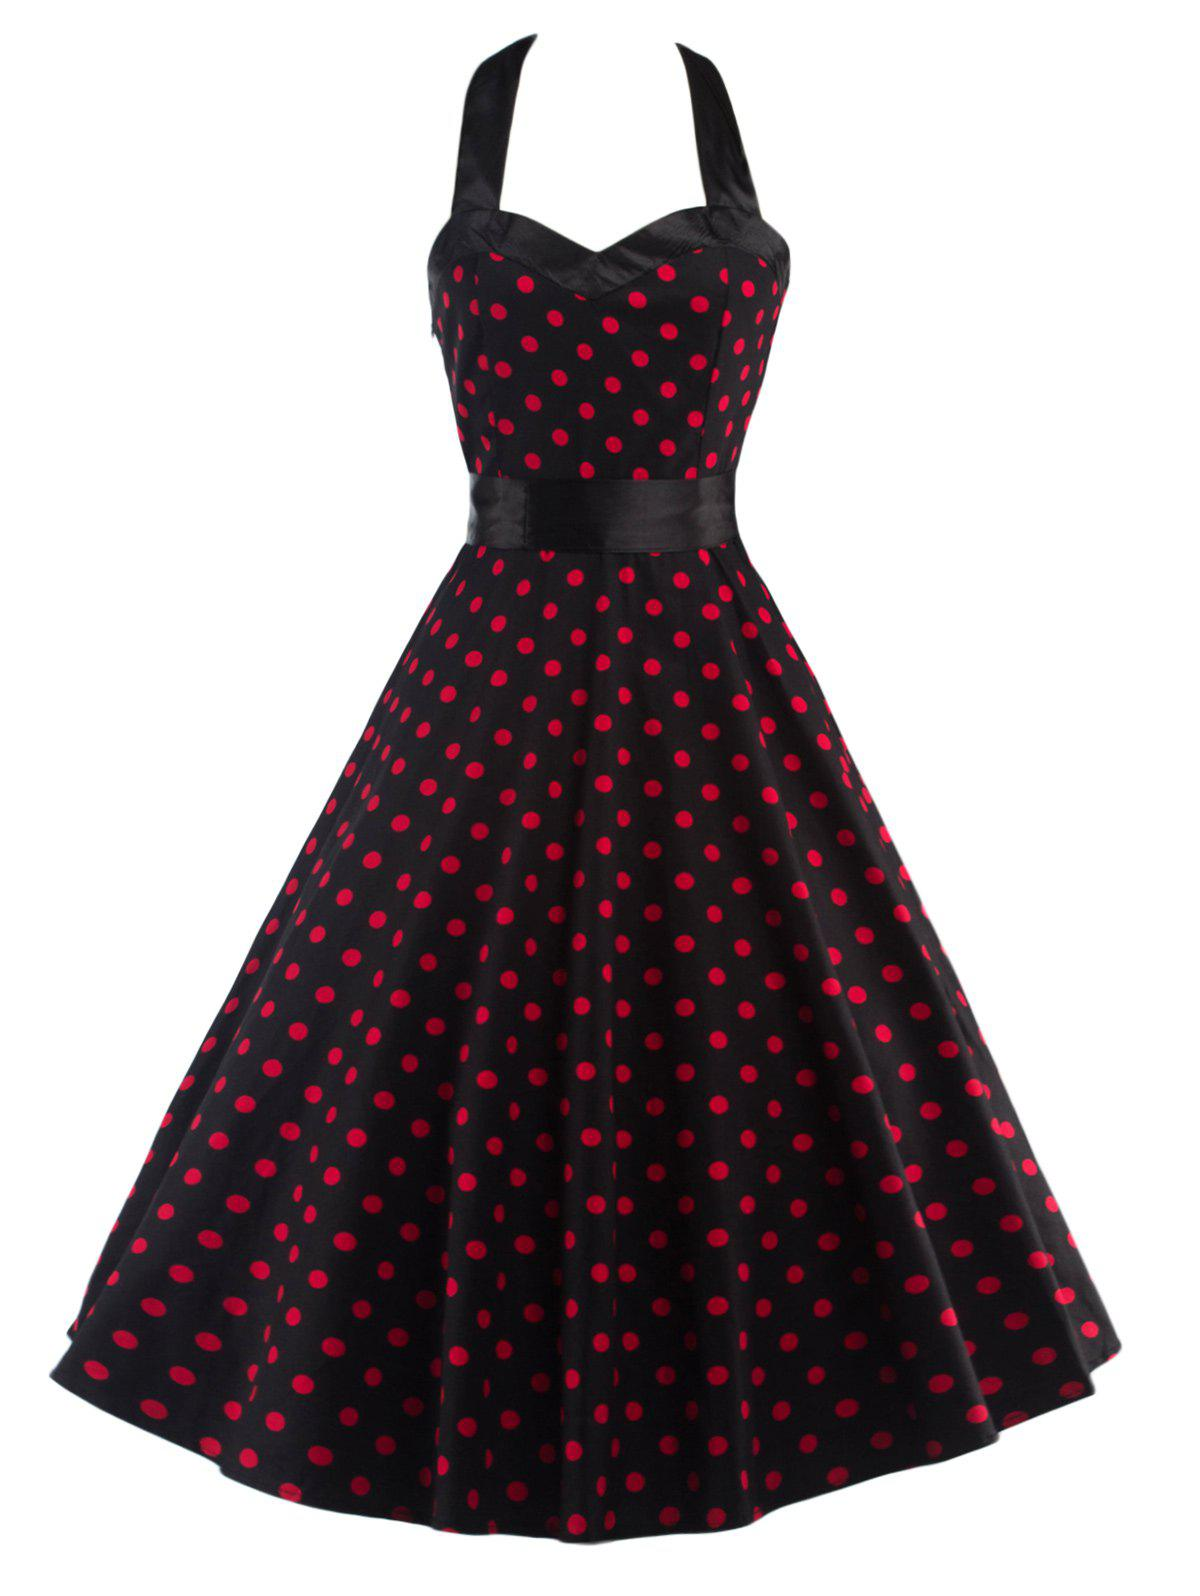 Halter Open Back Polka Dot Cocktail Dress - RED/BLACK 2XL